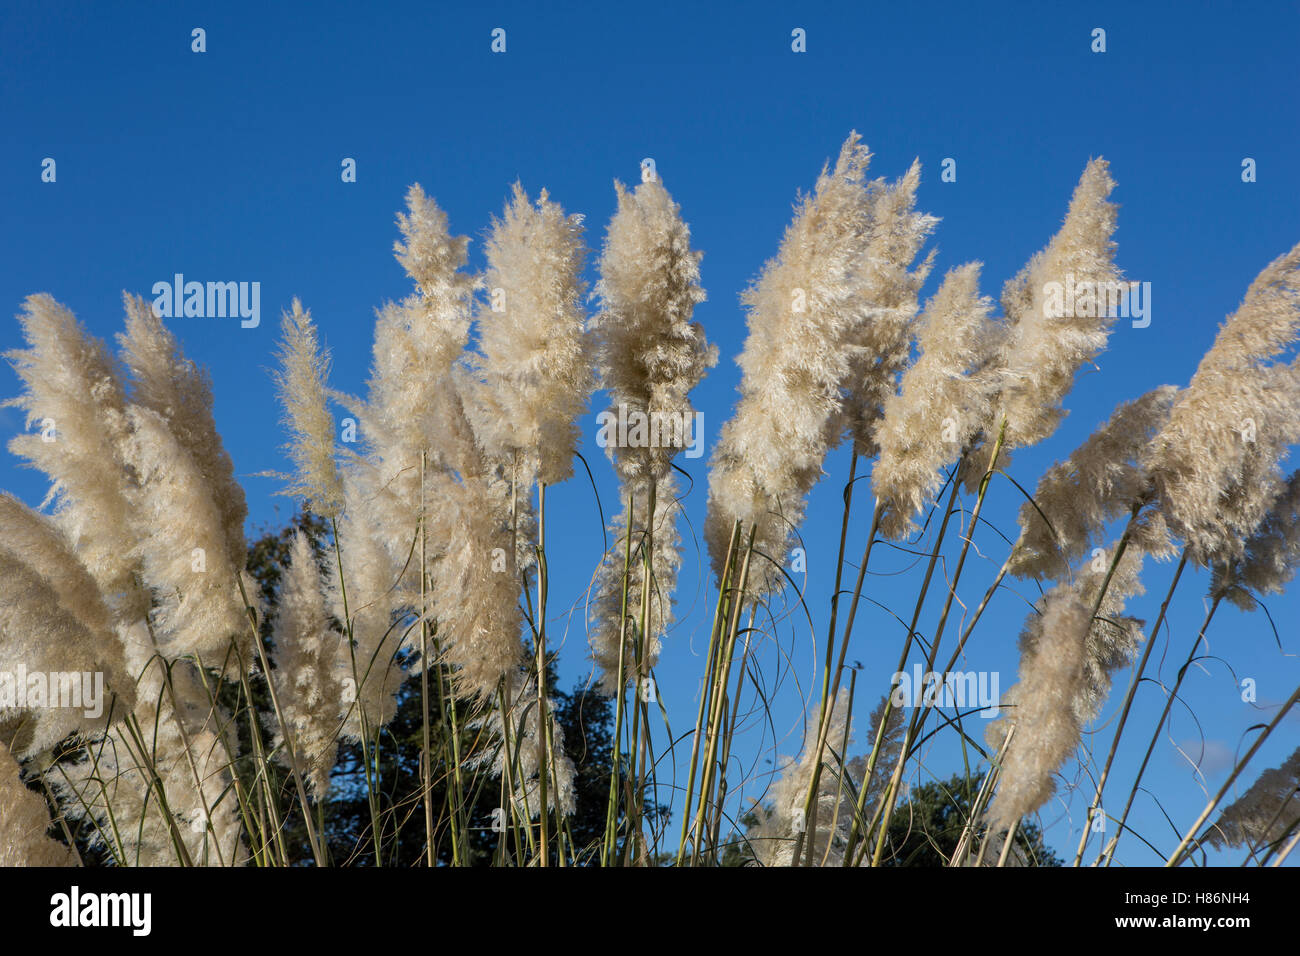 Pampas Grass, Cortaderia selloana - Stock Image